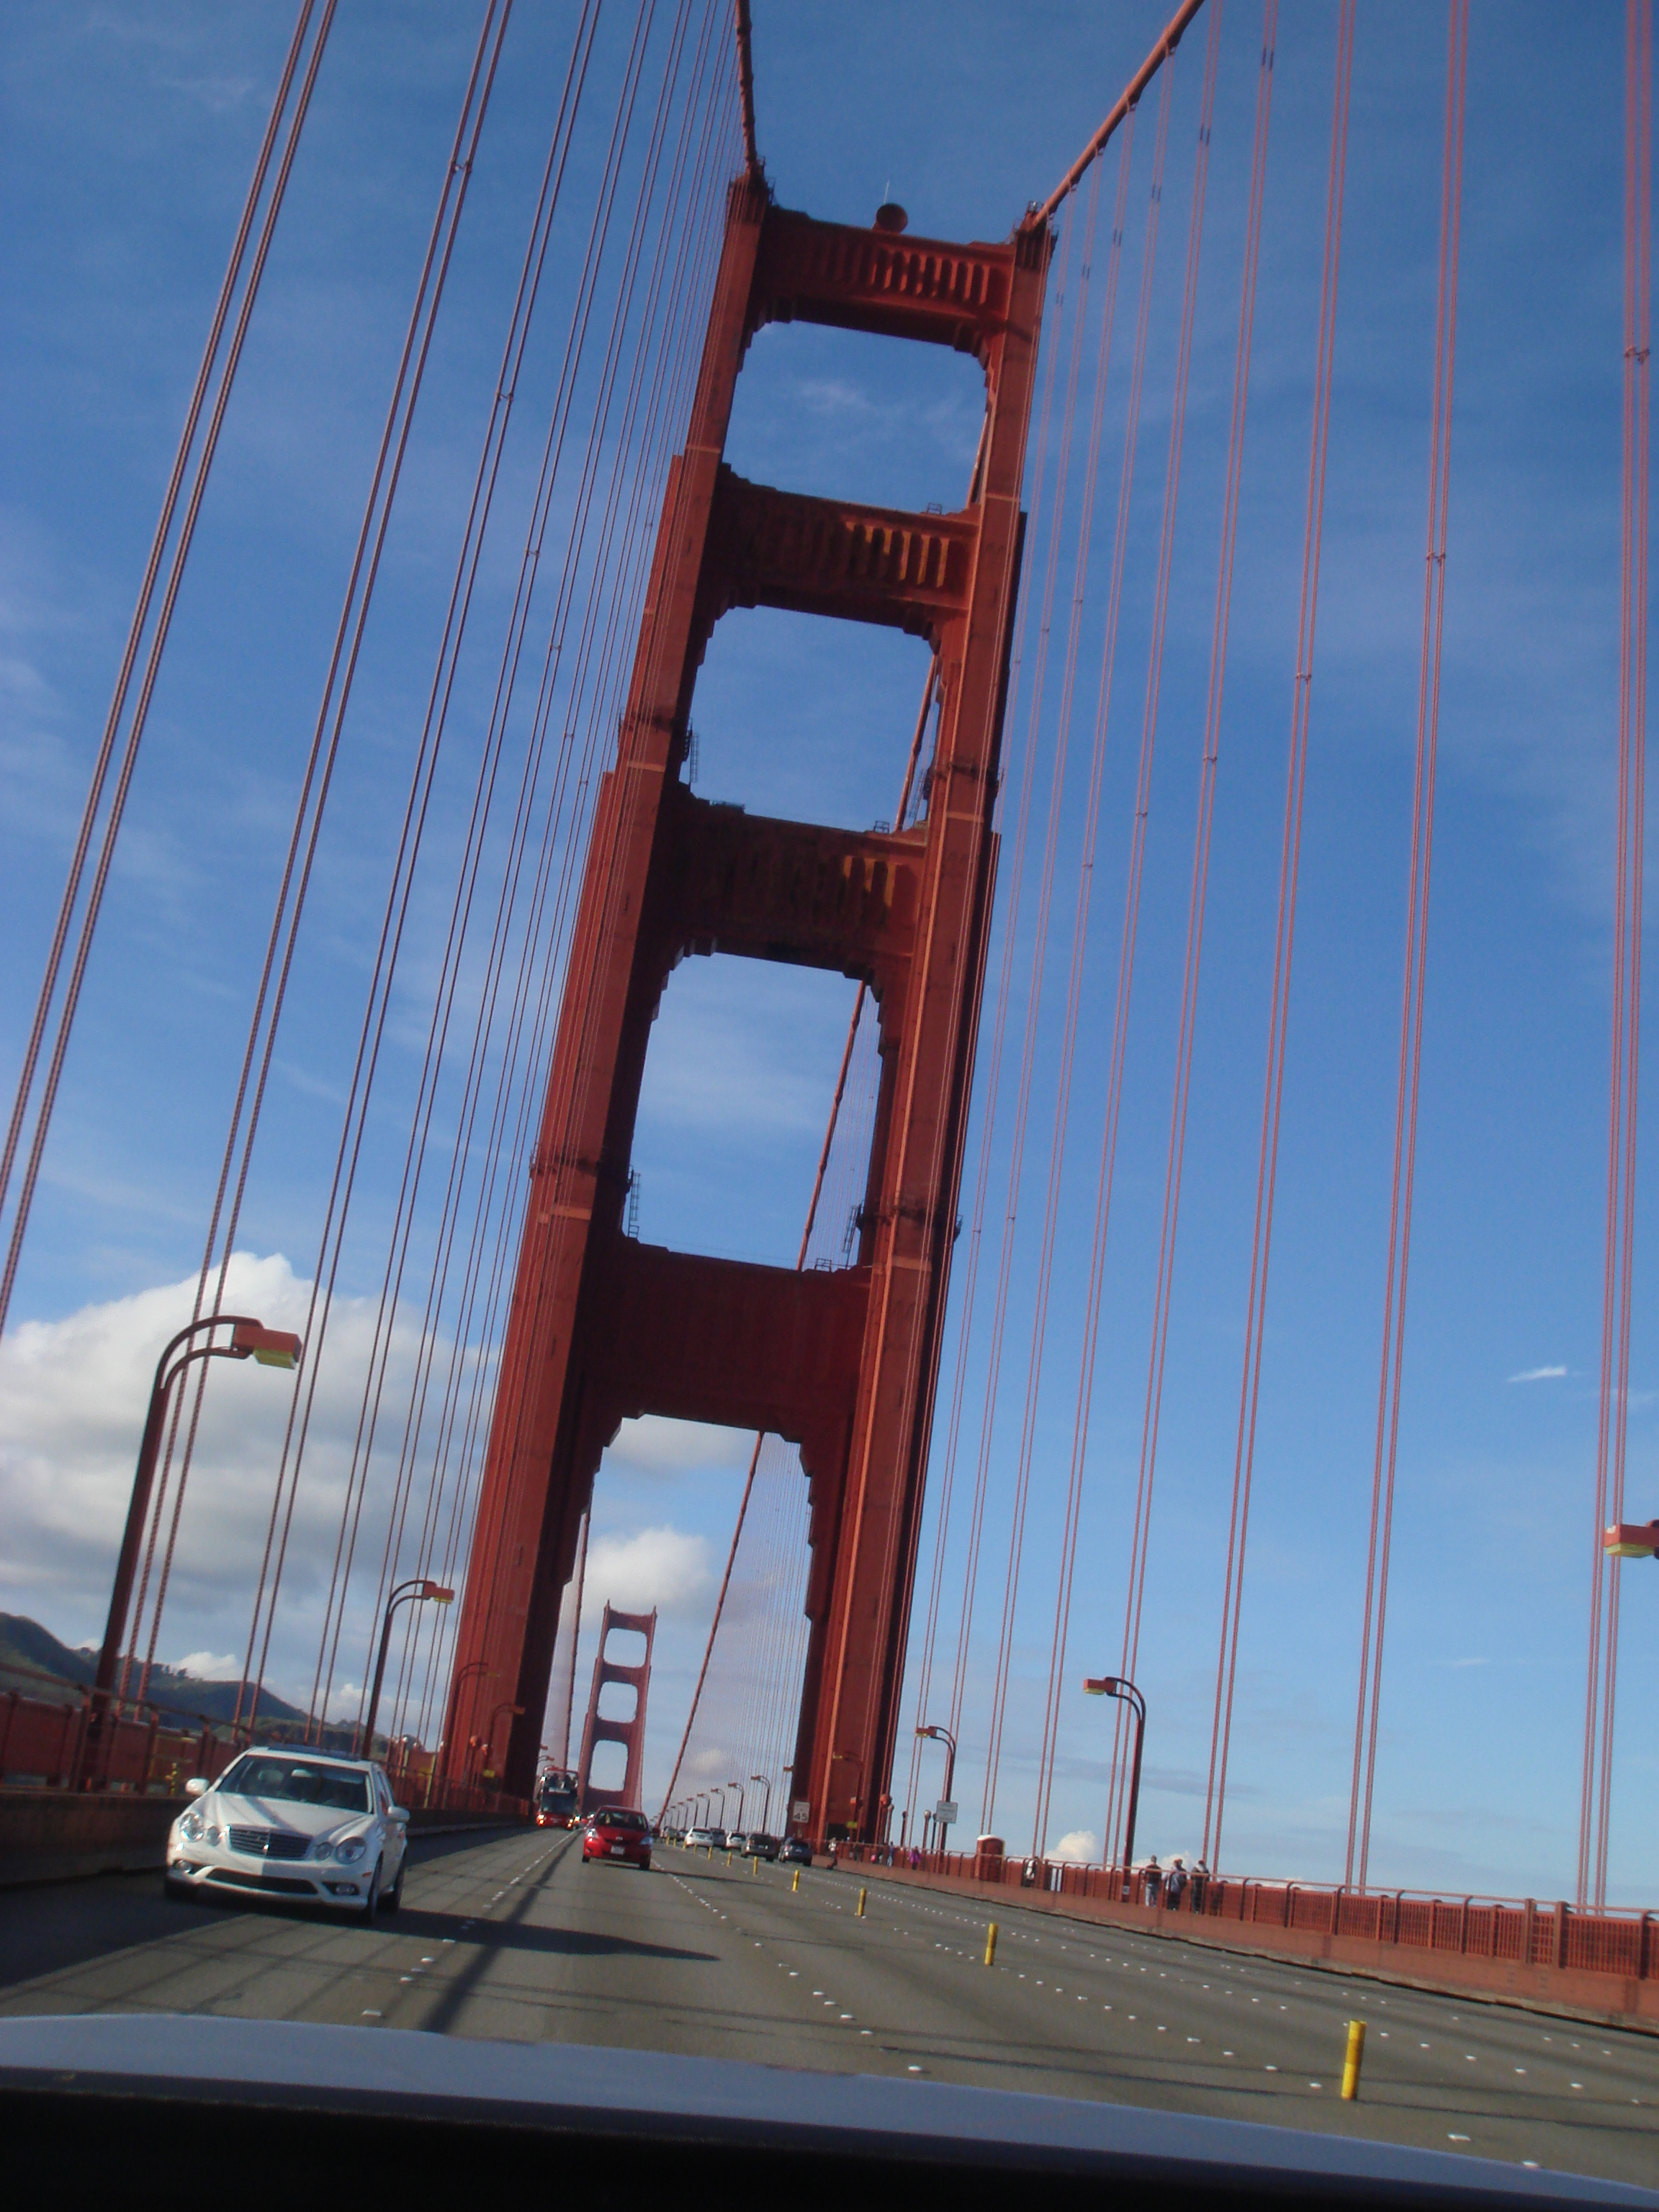 Golden Gate Bridge - Pic taken from looking out the BACK of the convertible.